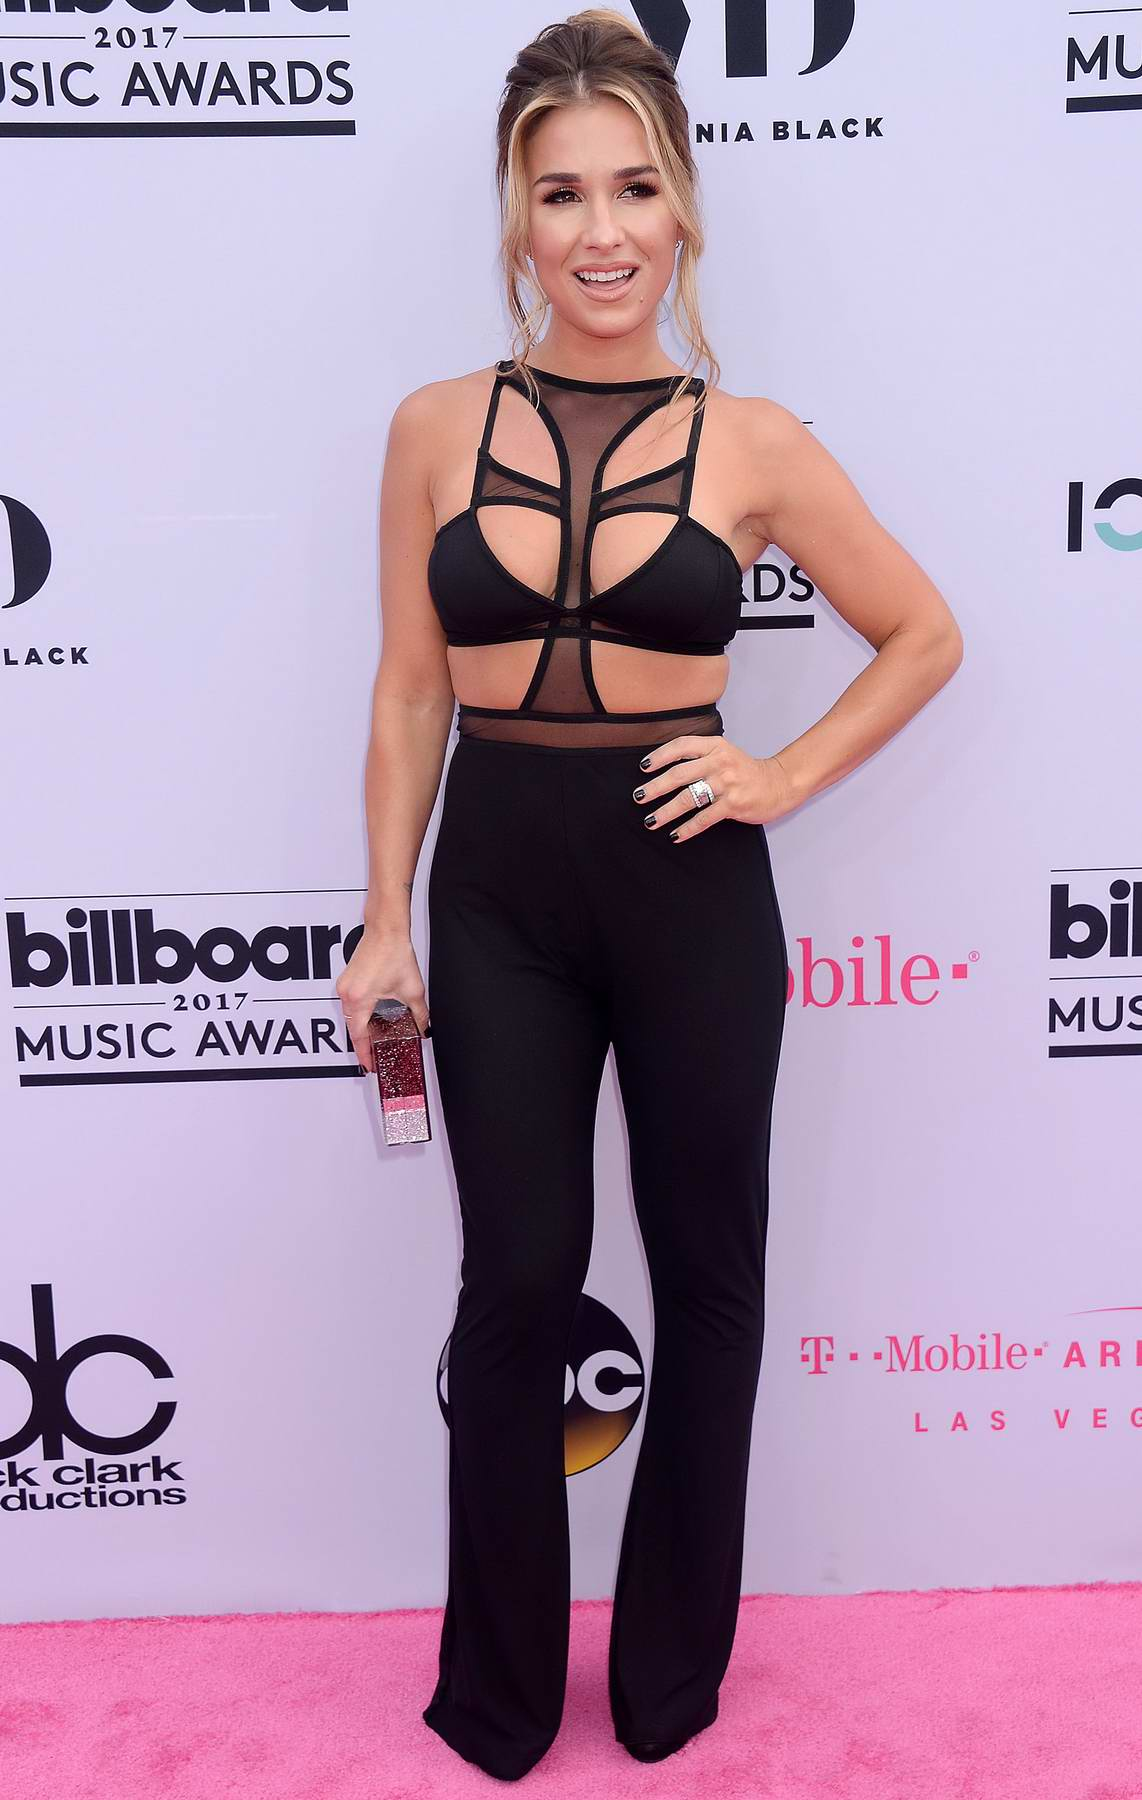 Jessie James Decker 2017 Billboard Music Awards (BMA 2017) in Las Vegas